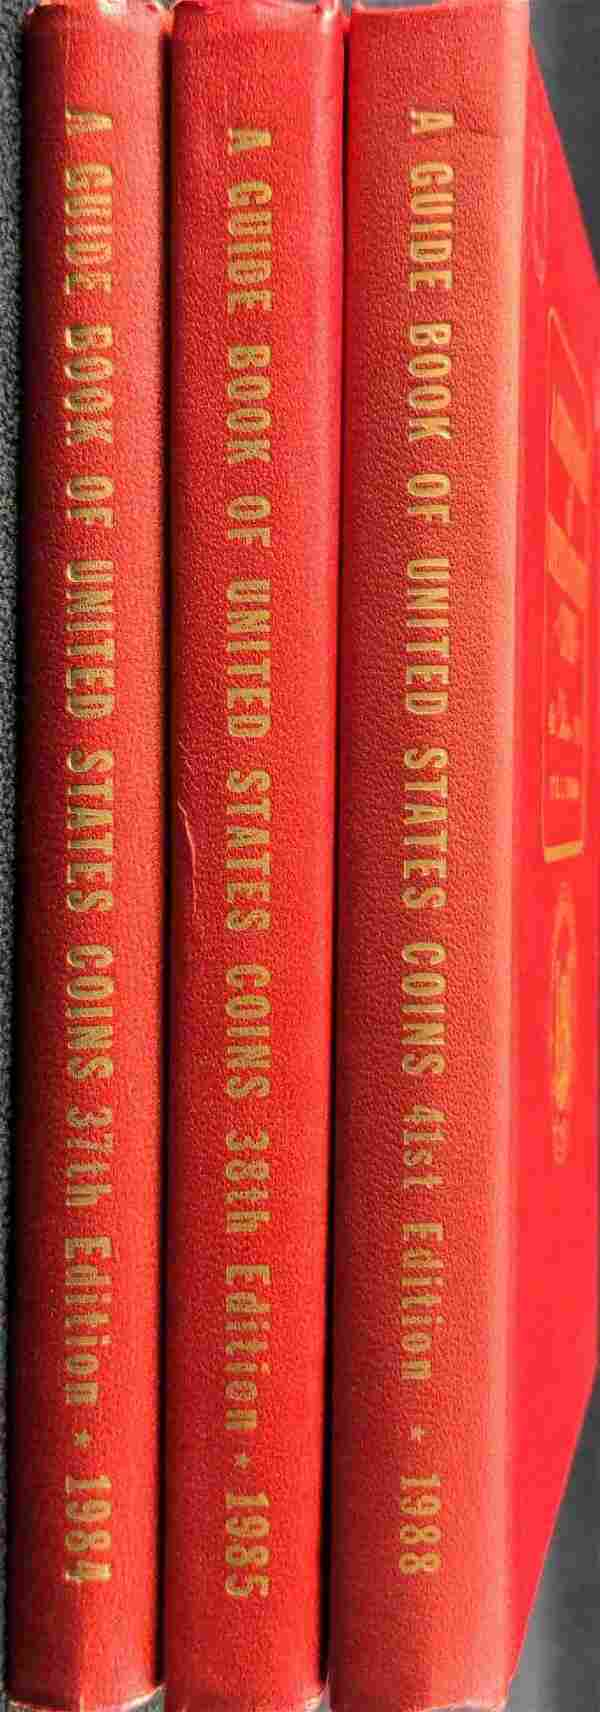 3 Guide Books Of United States Coins 84 85 88